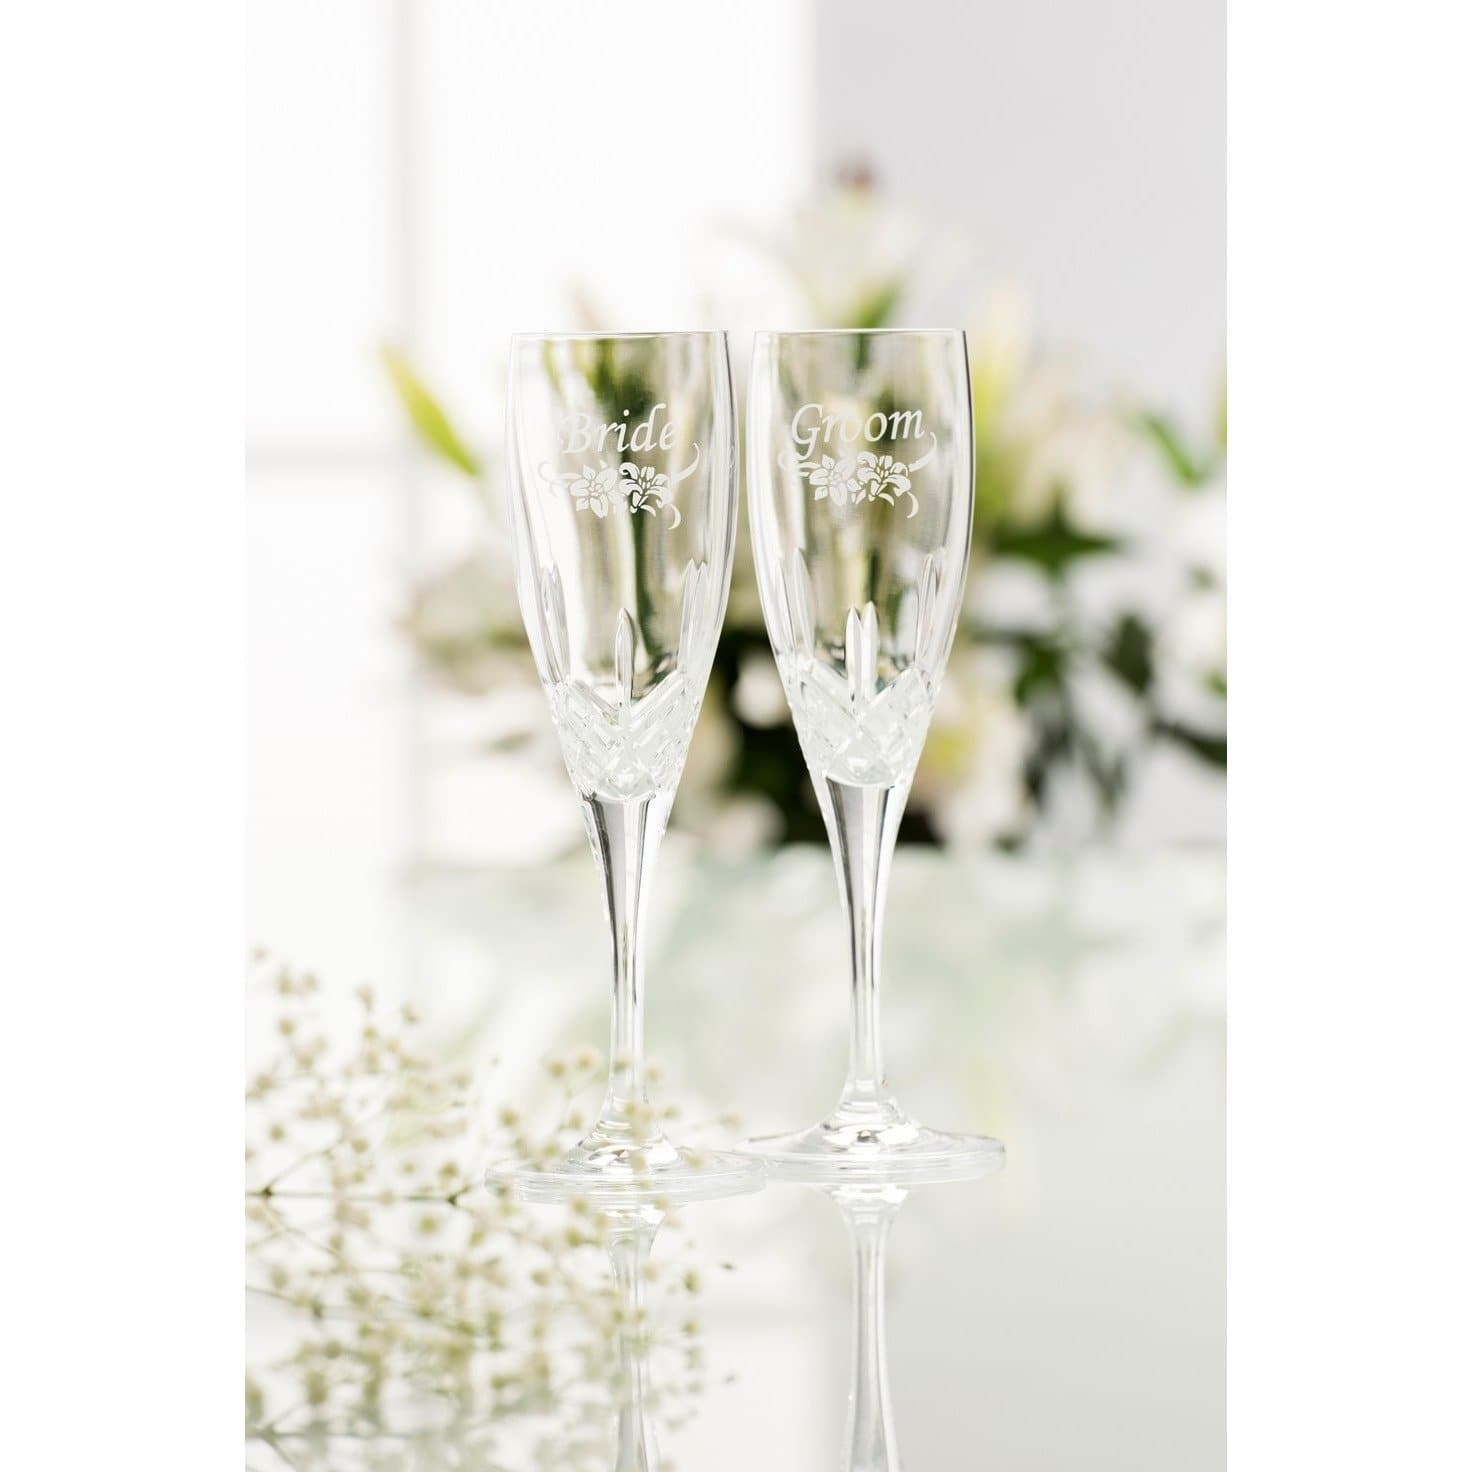 NEW Bride & Groom Flute (Floral Spray - Pair) G270392